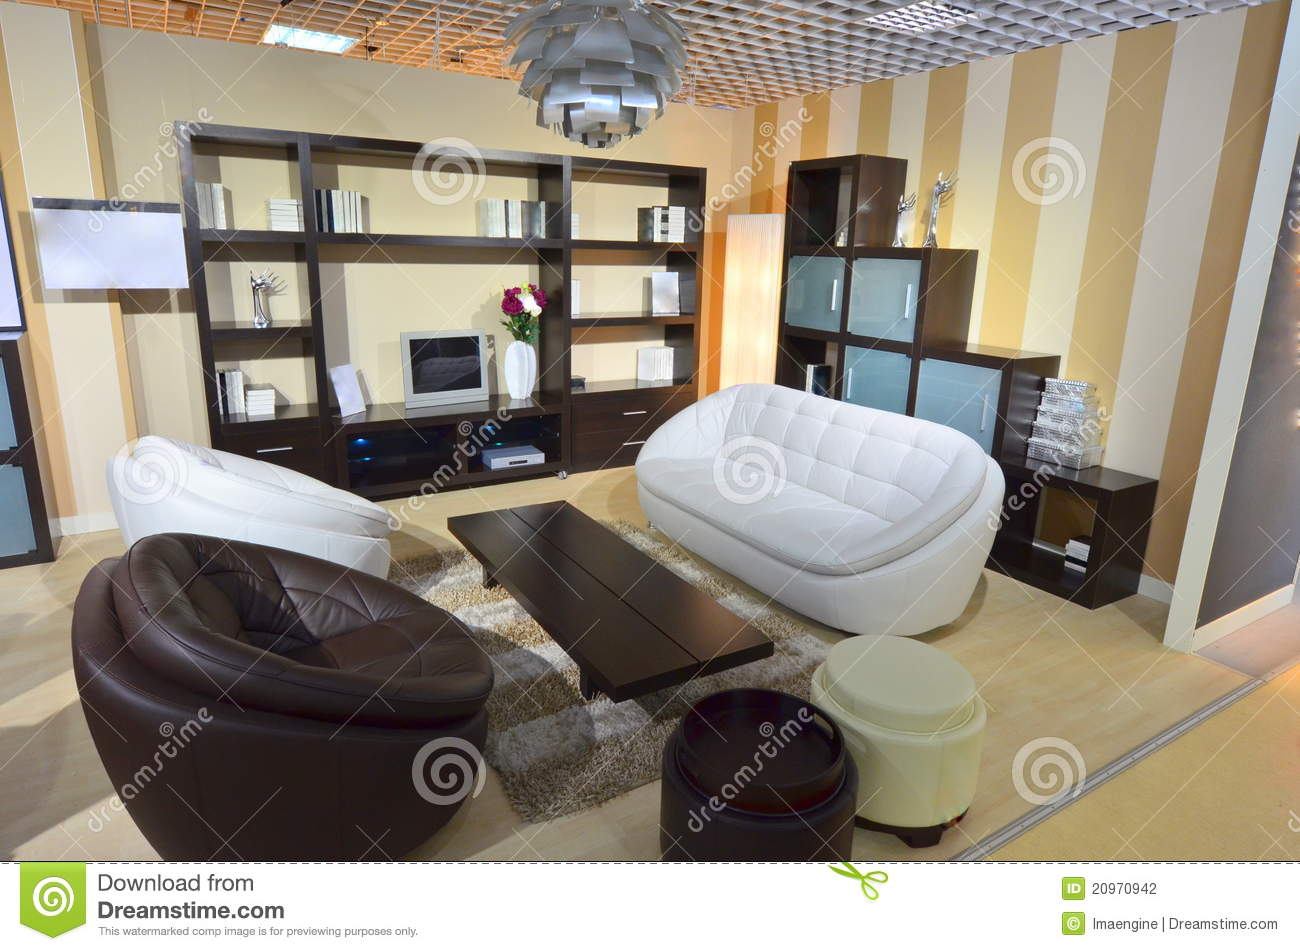 pictures of furnished living rooms room fan light fully area inside our home stock photo image livingroom with white and dark brown leather sofa armchairs